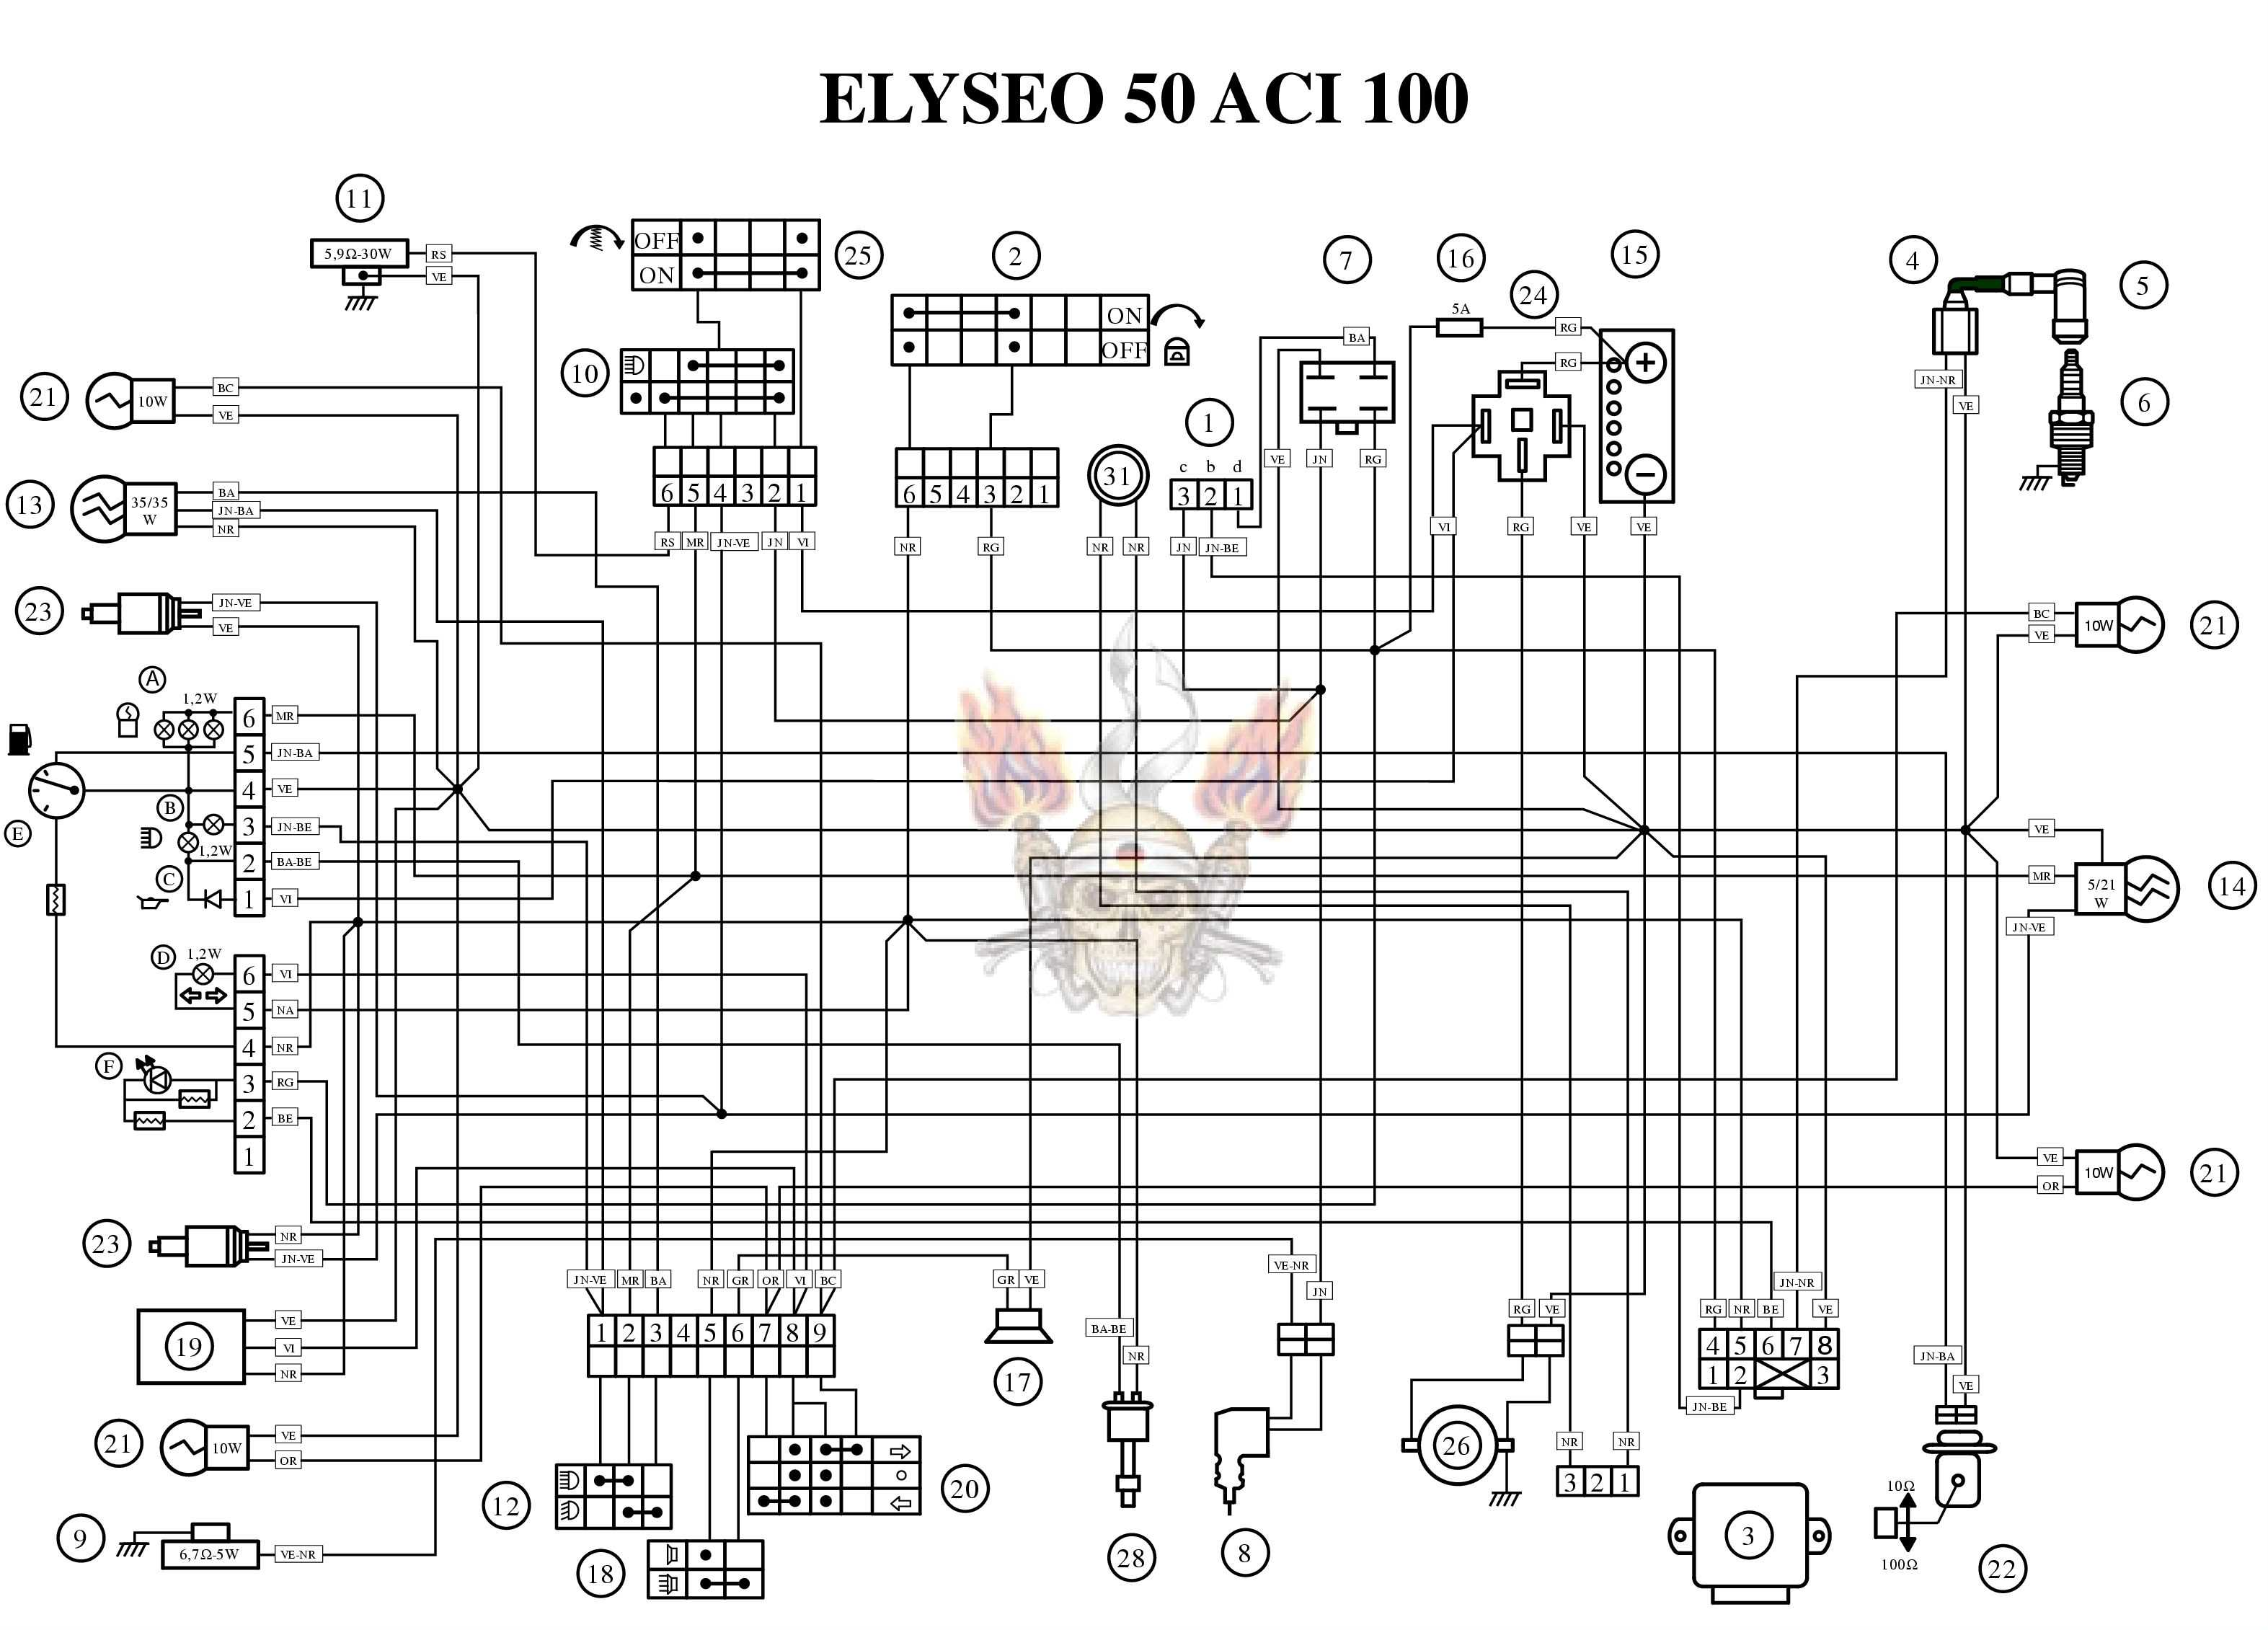 Wiring Diagram Peugeot ELYSEO 50 ACI 100 peugeot 307 wiring diagram efcaviation com peugeot 307 towbar wiring diagram at gsmportal.co